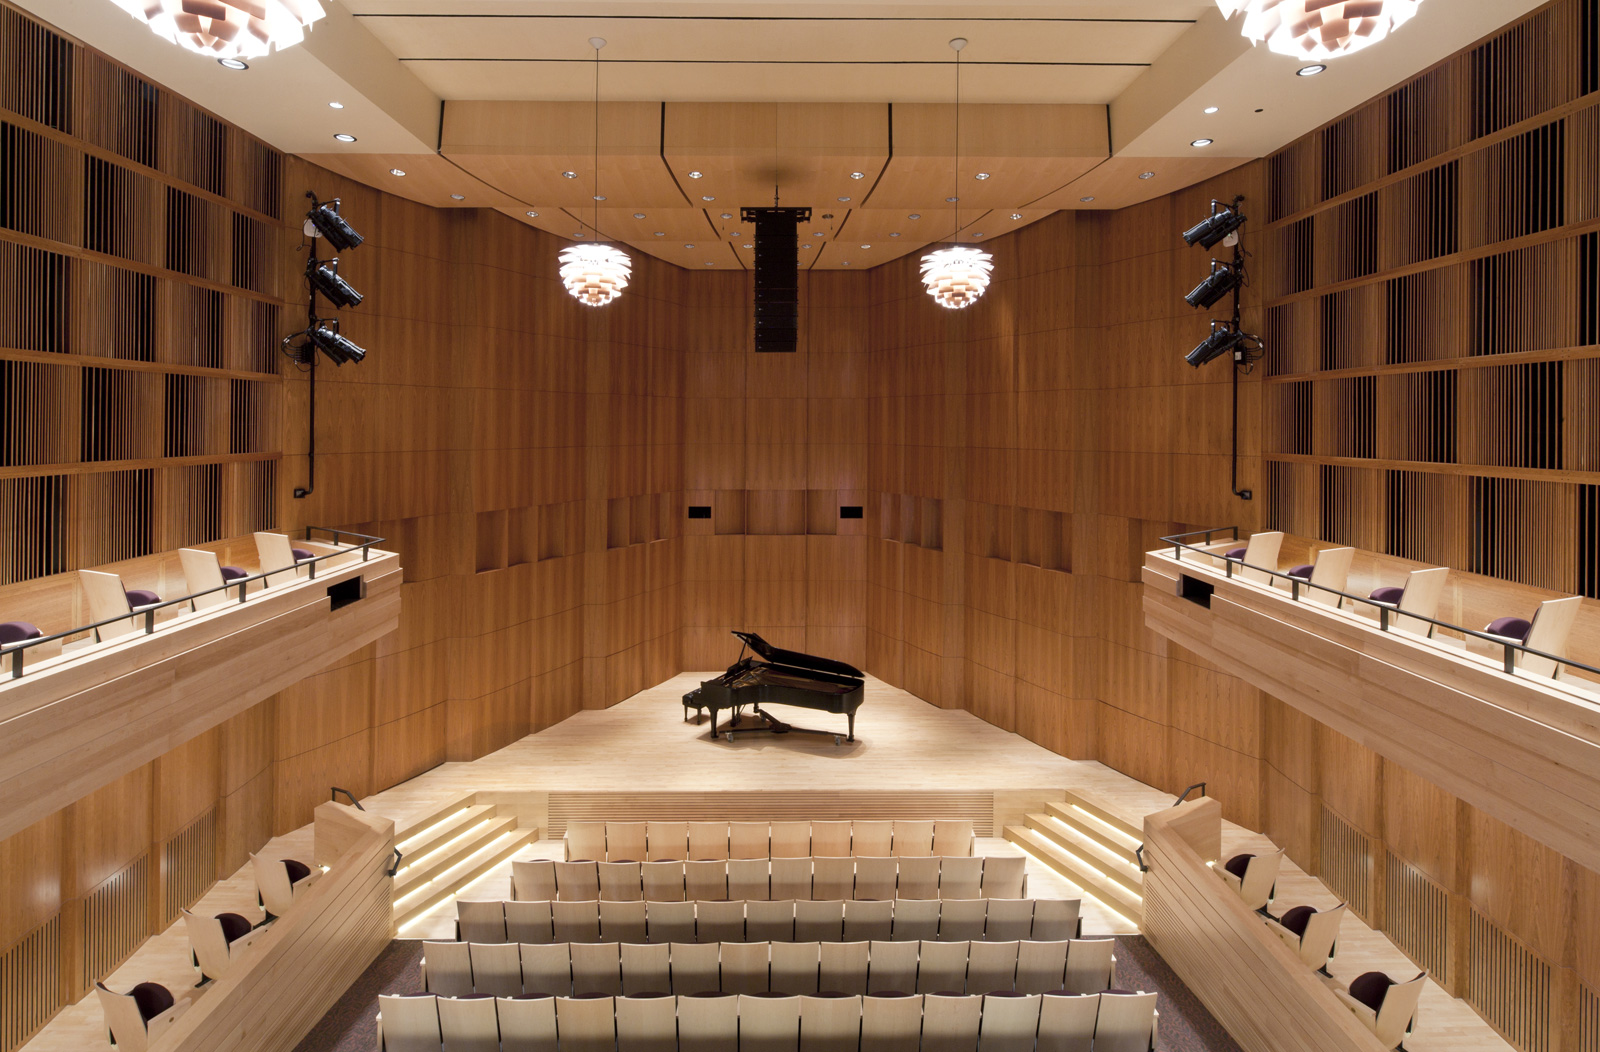 Eastman School of Music: Hatch Recital Hall Accessibility